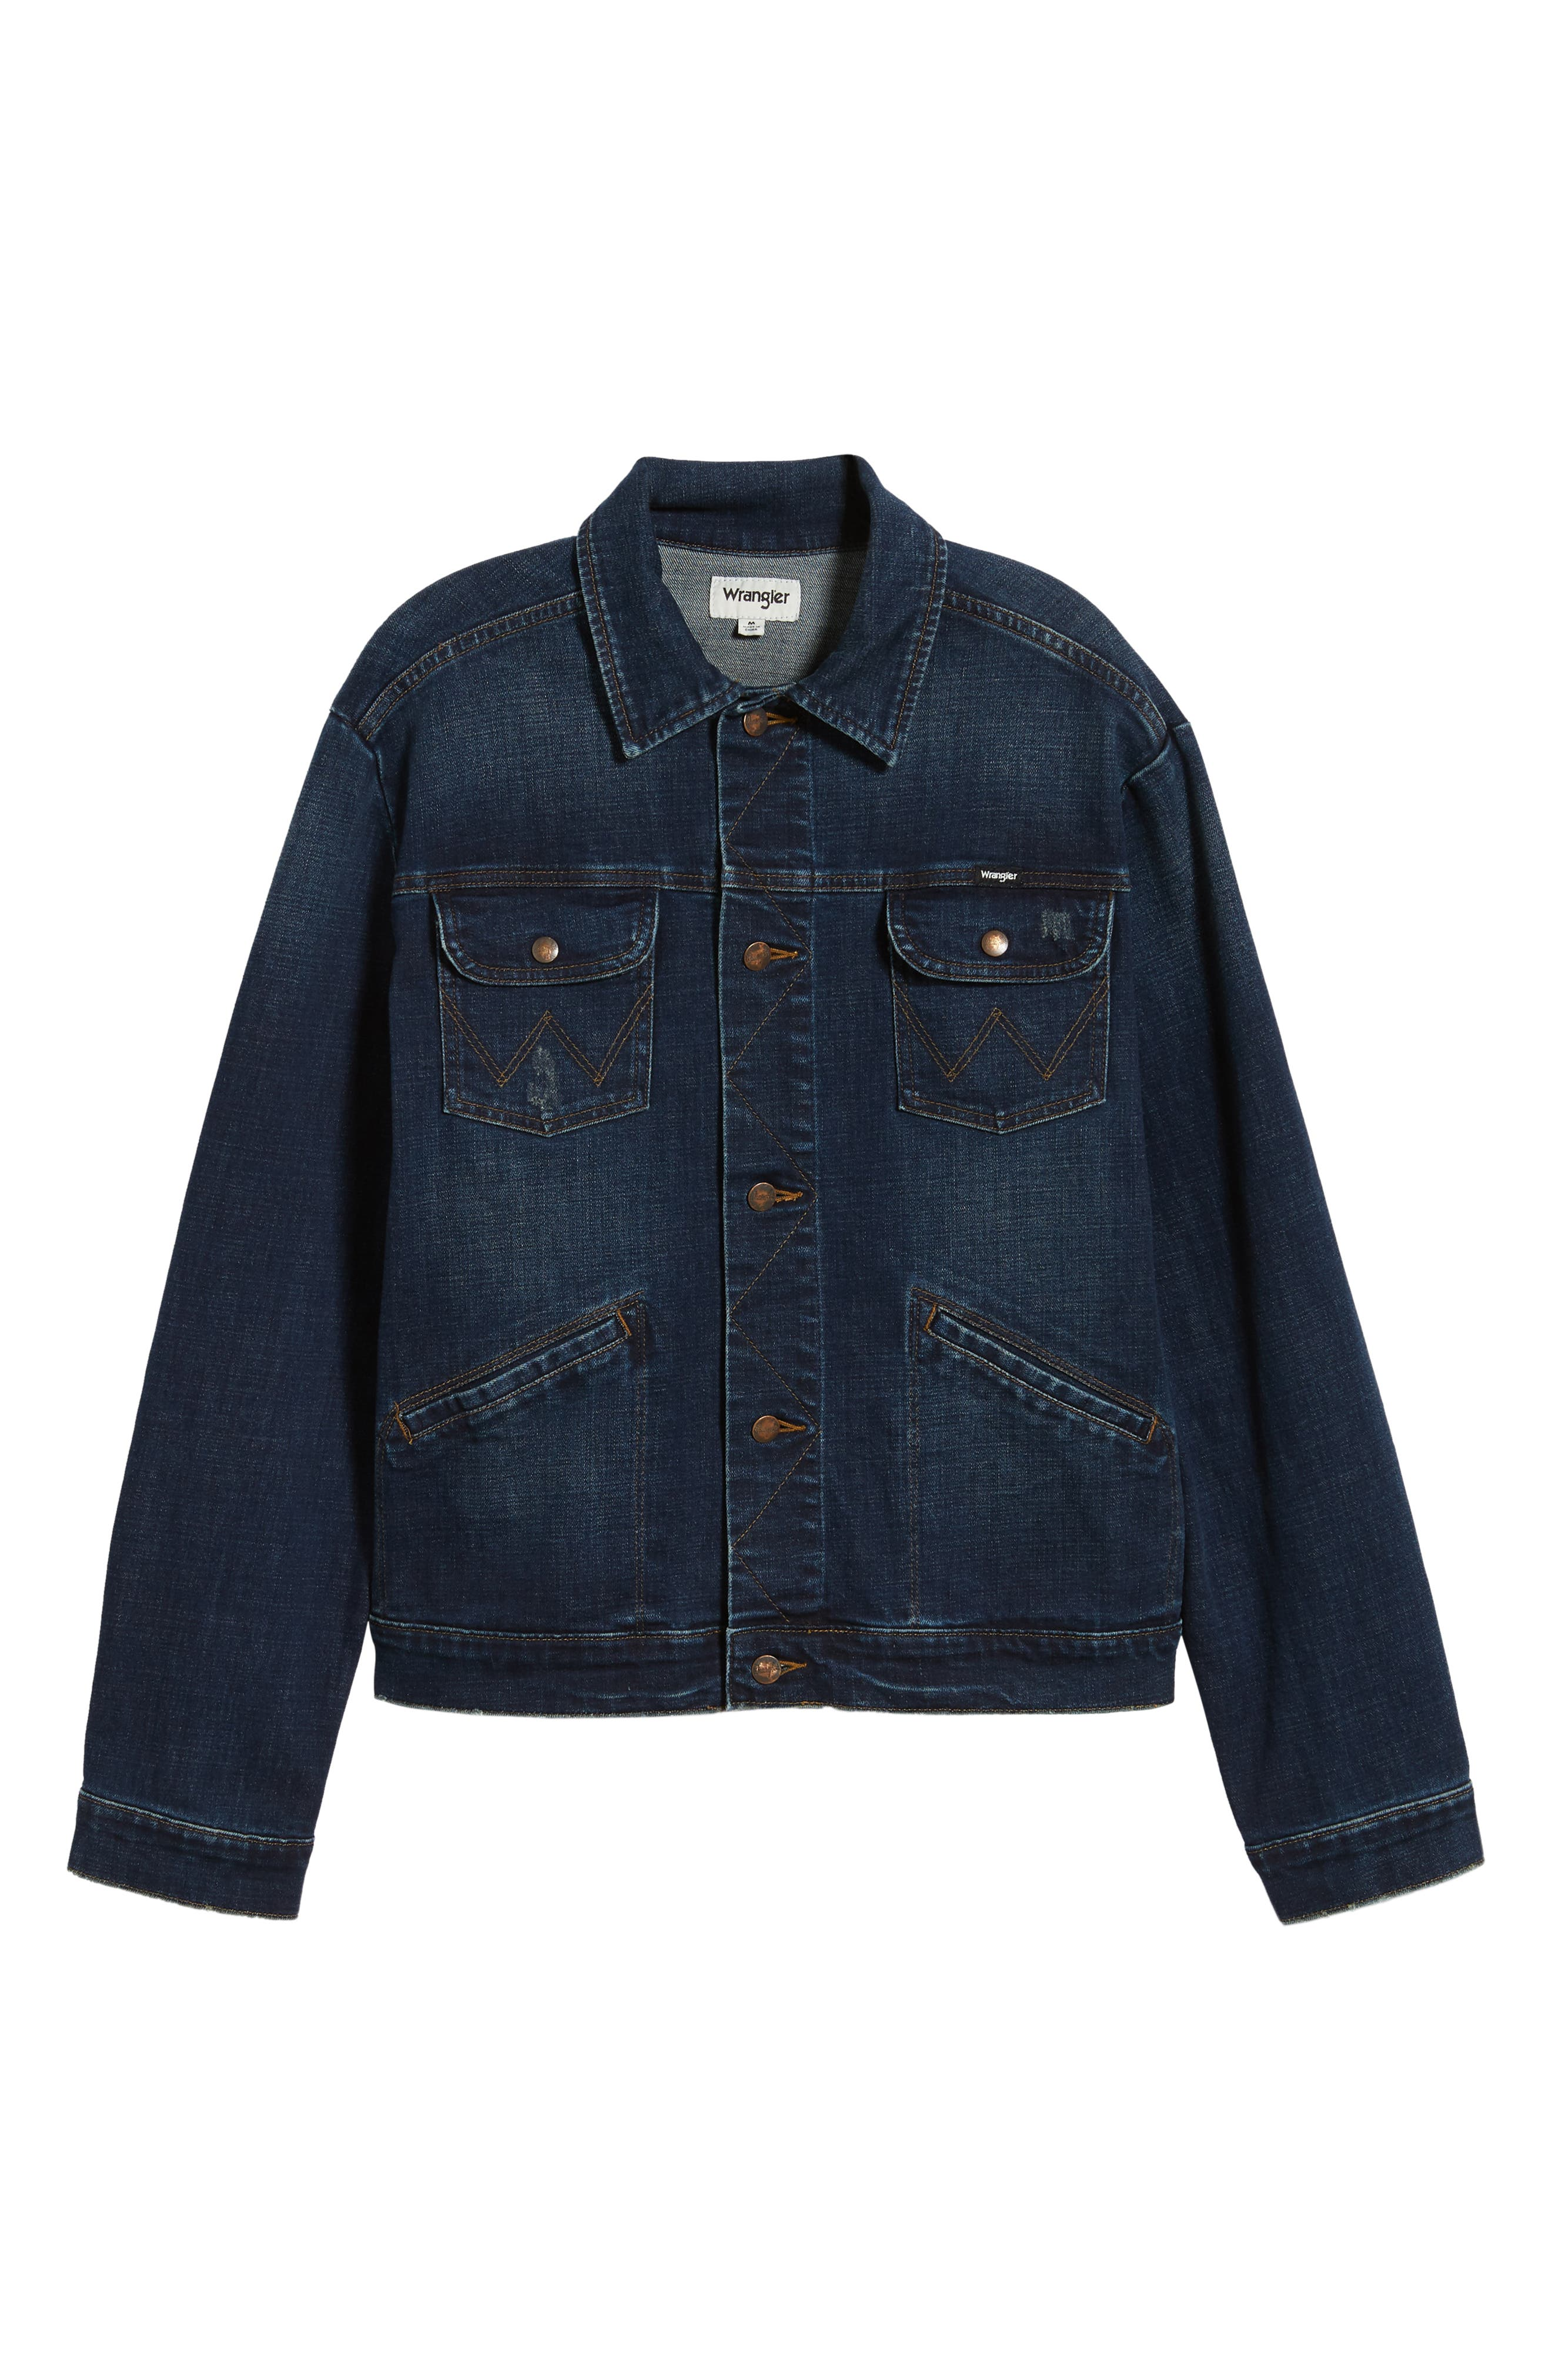 Heritage Denim Jacket,                             Alternate thumbnail 6, color,                             DARK WASH